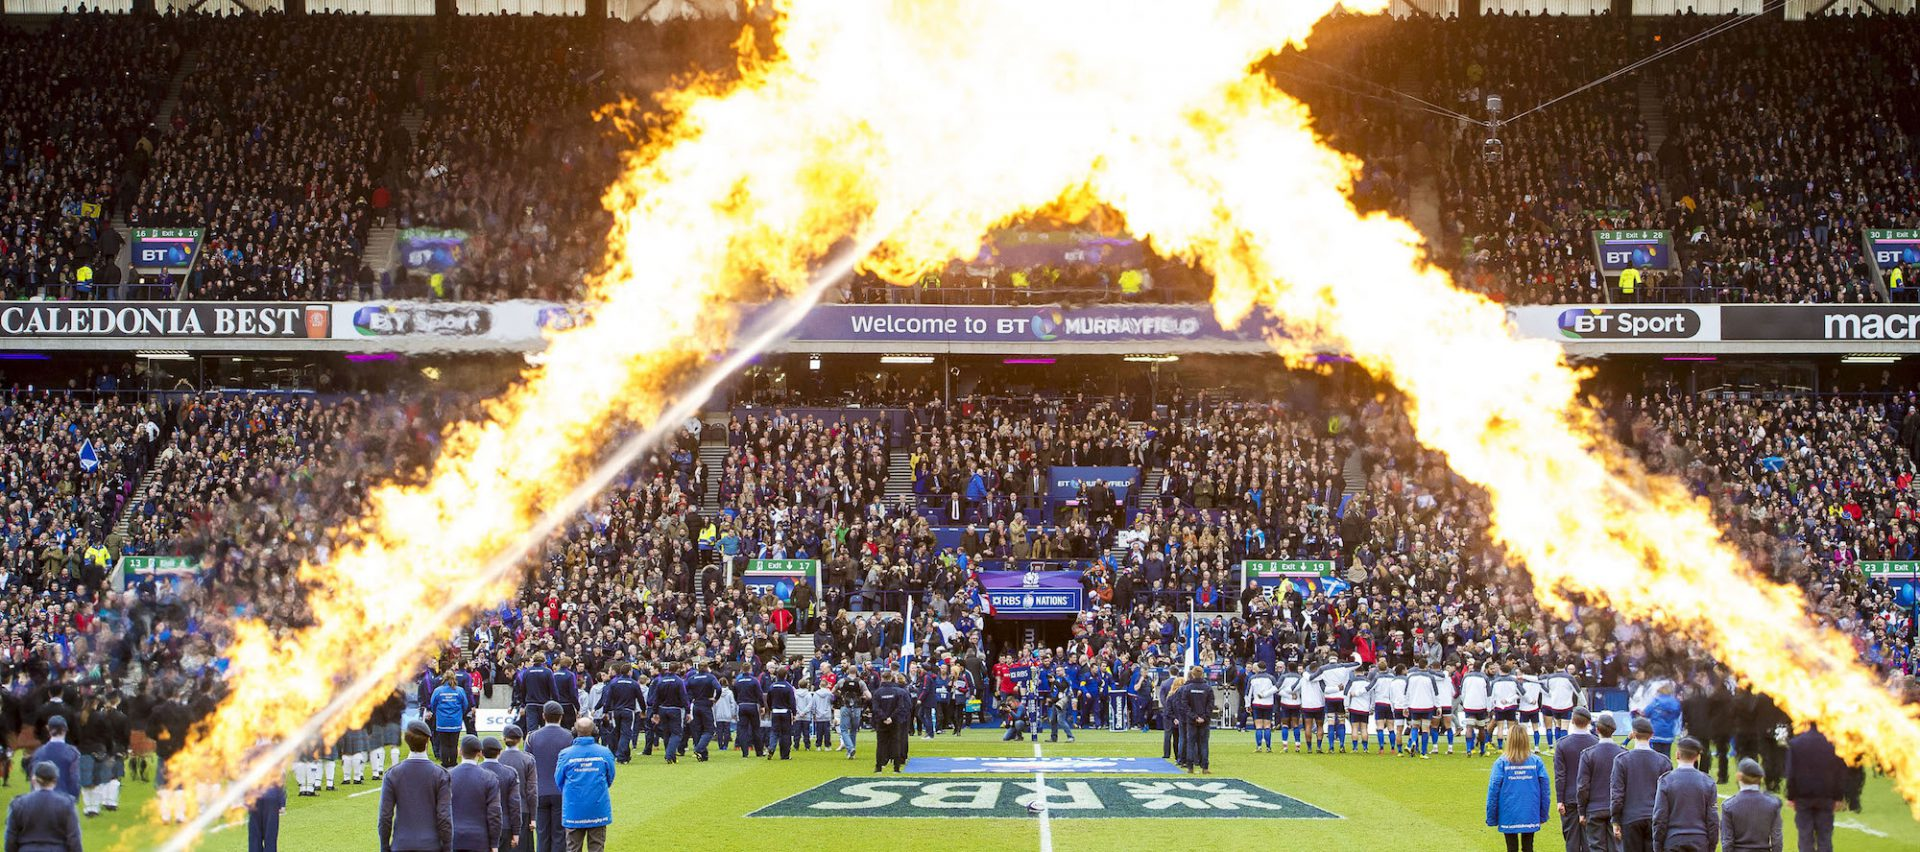 Six Nations Championship: Fixture List and Luggage Storage Guide